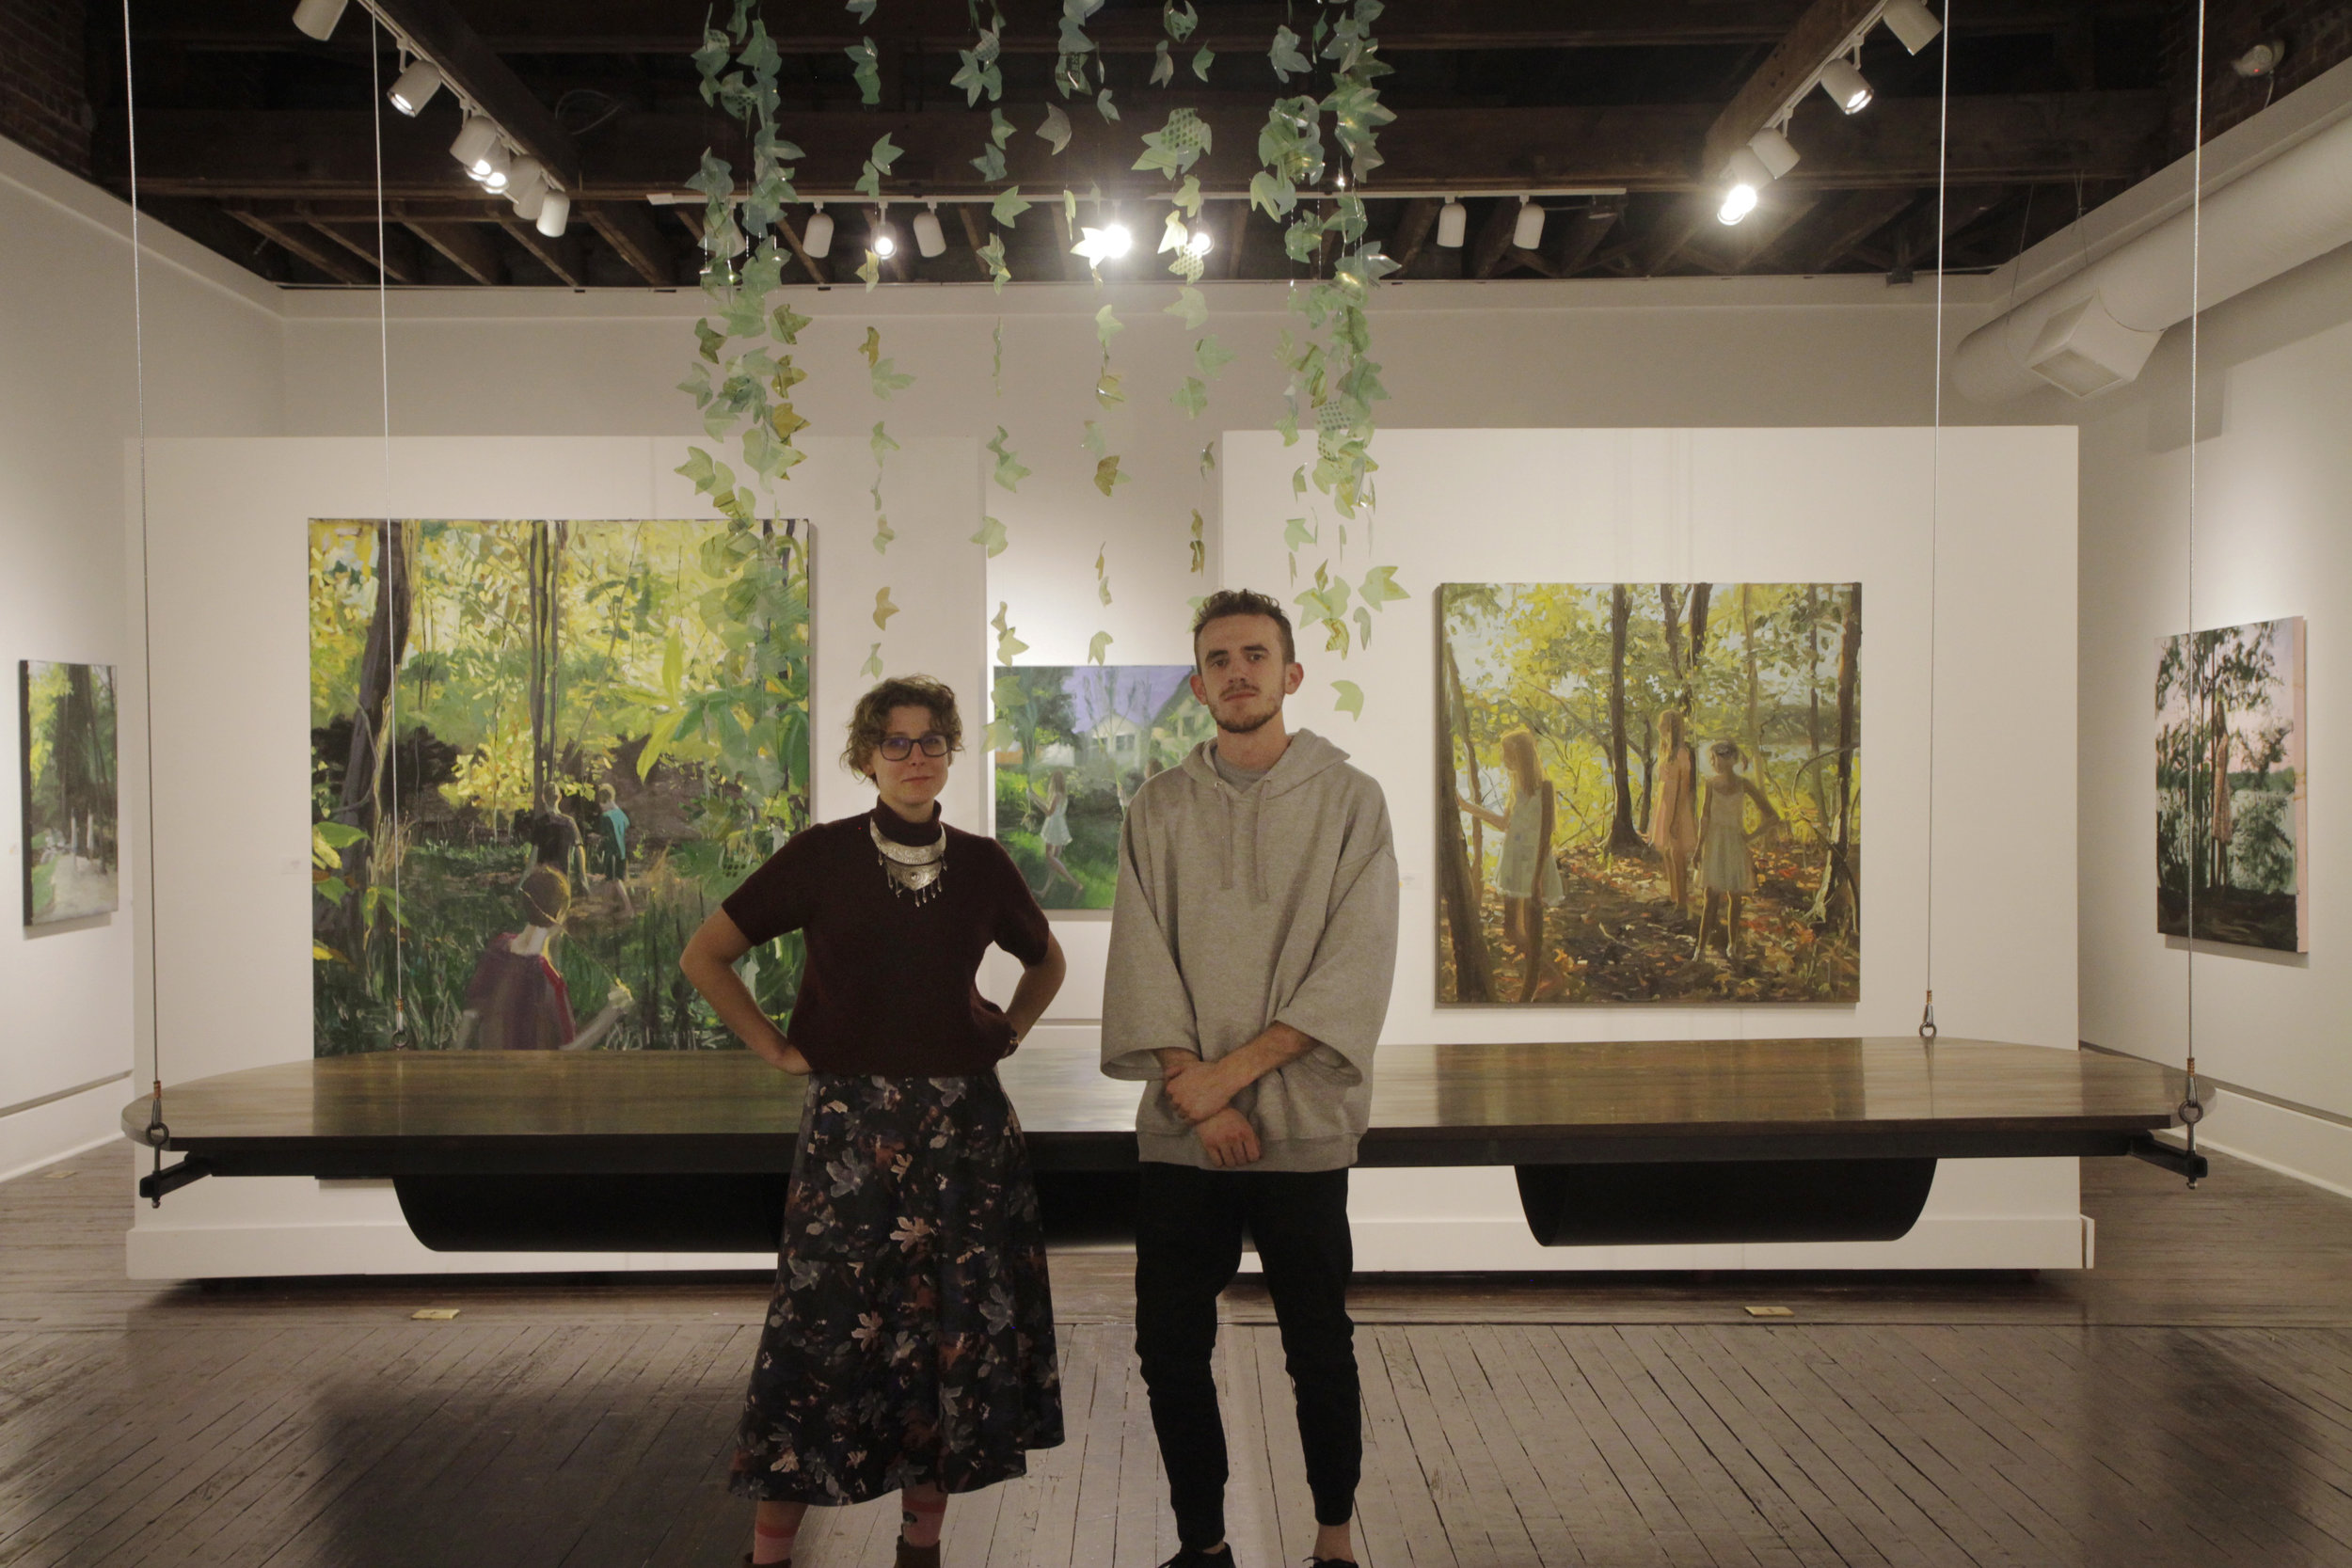 Covenant Art majors Abi Ogle and Caleb Smith at the Harrison Center for the Arts. (Photo by Caleb Smith.)